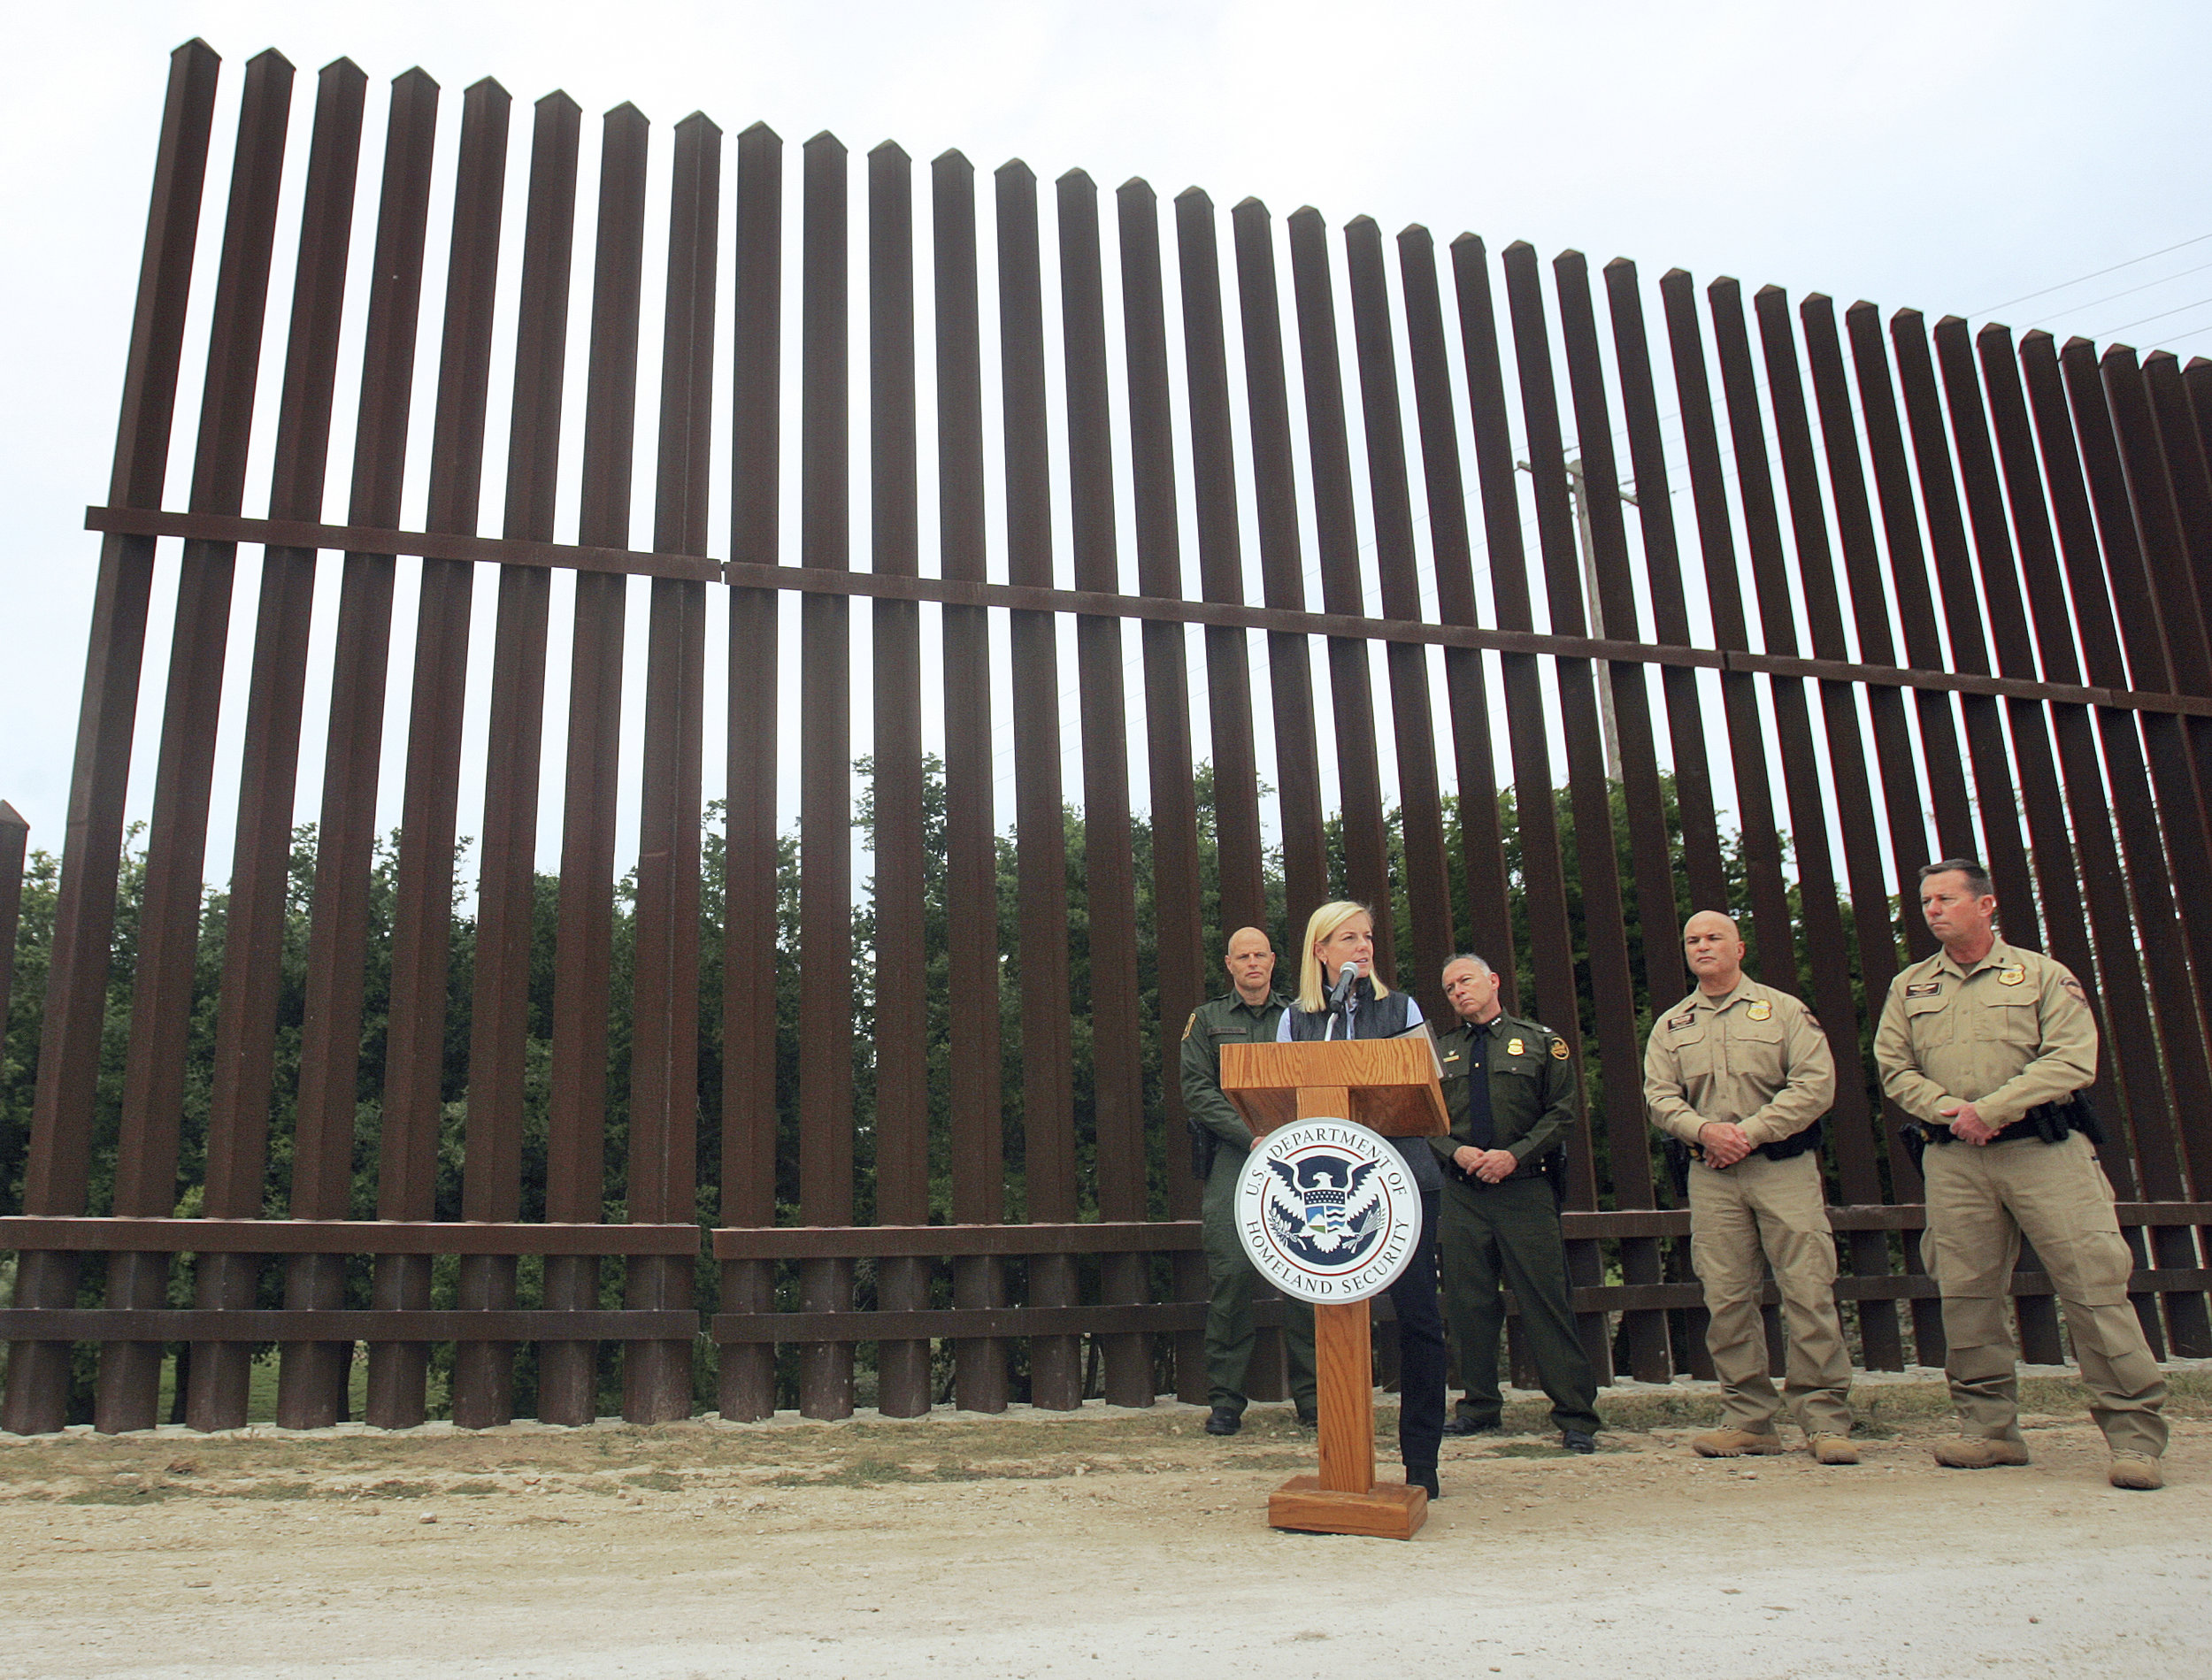 Department of Homeland Security Secretary Kirstjen Nielsen speaks at a section of the U.S.-Mexico border in Hidalgo, Texas in 2017 ( Image )